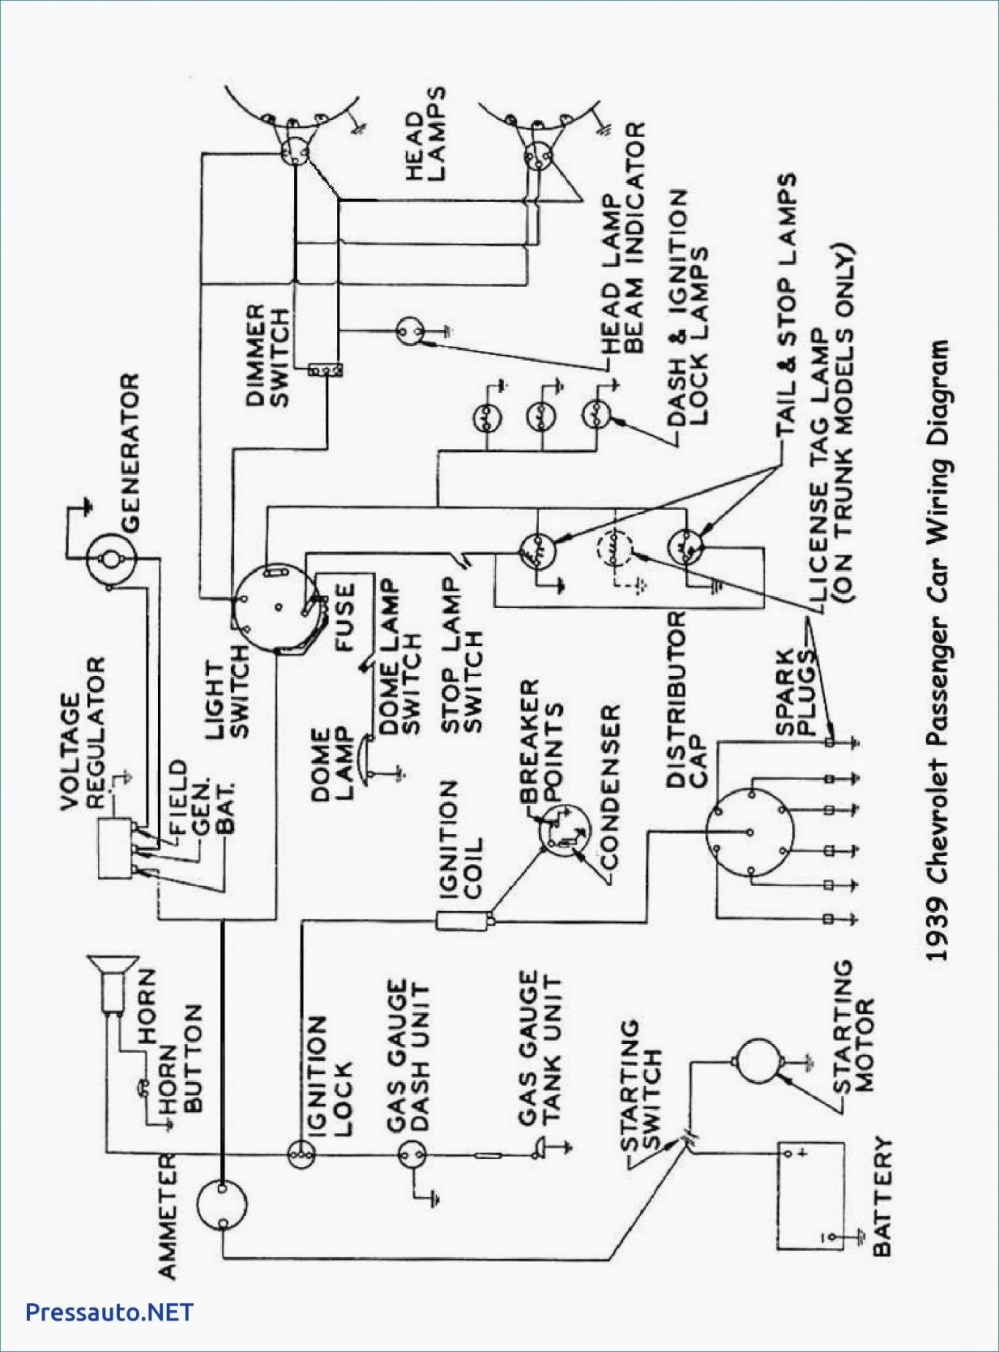 medium resolution of 1366x1848 wiring diagram 1 gang switch best of way dimmer wiring diagram